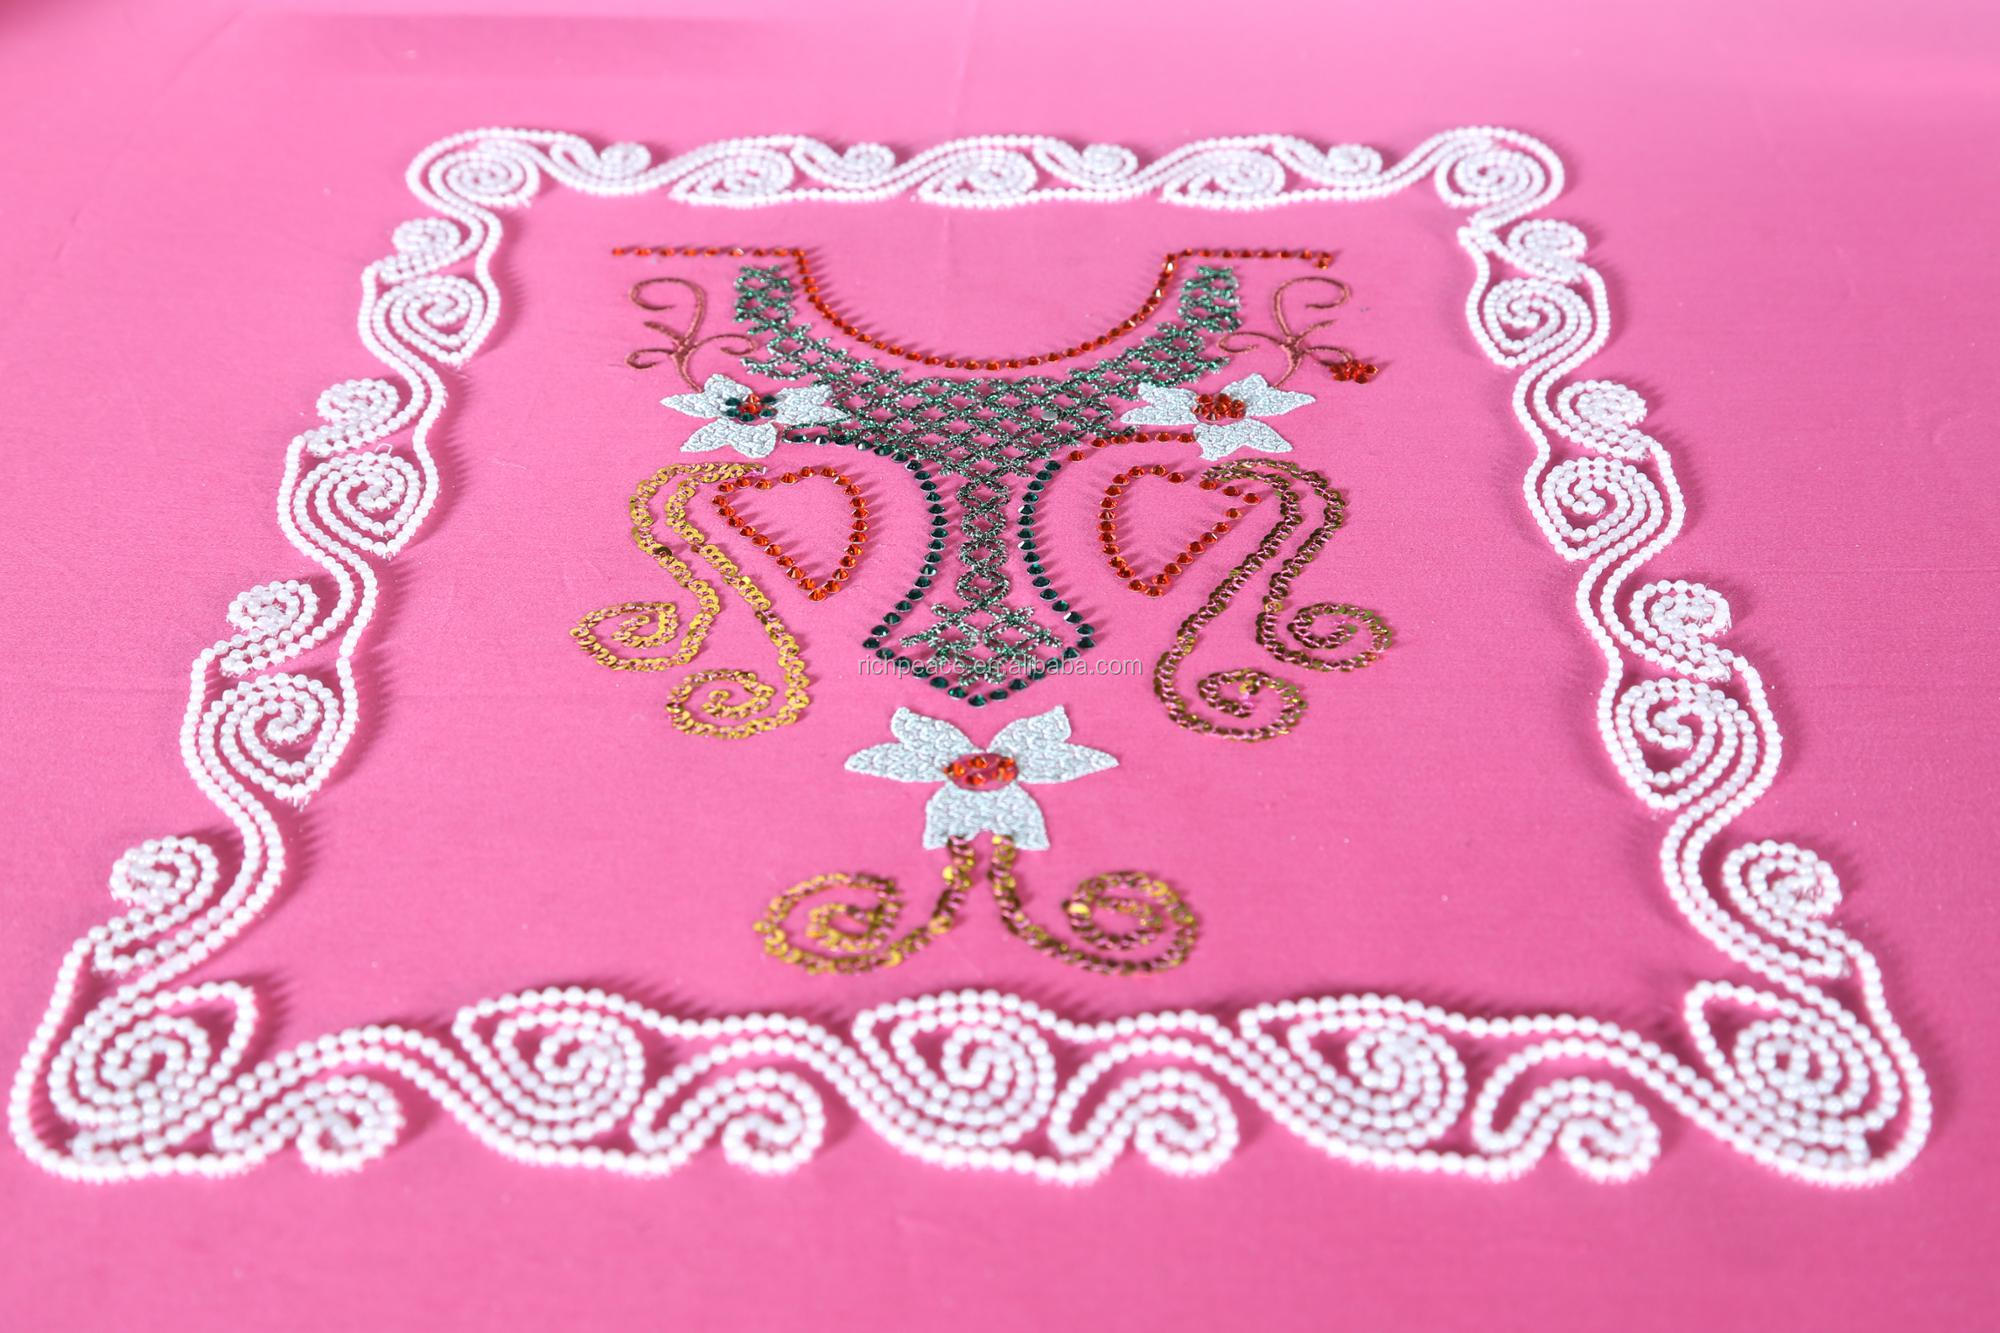 Richpeace Computerized Mixed Rhinestone Embroidery Machine